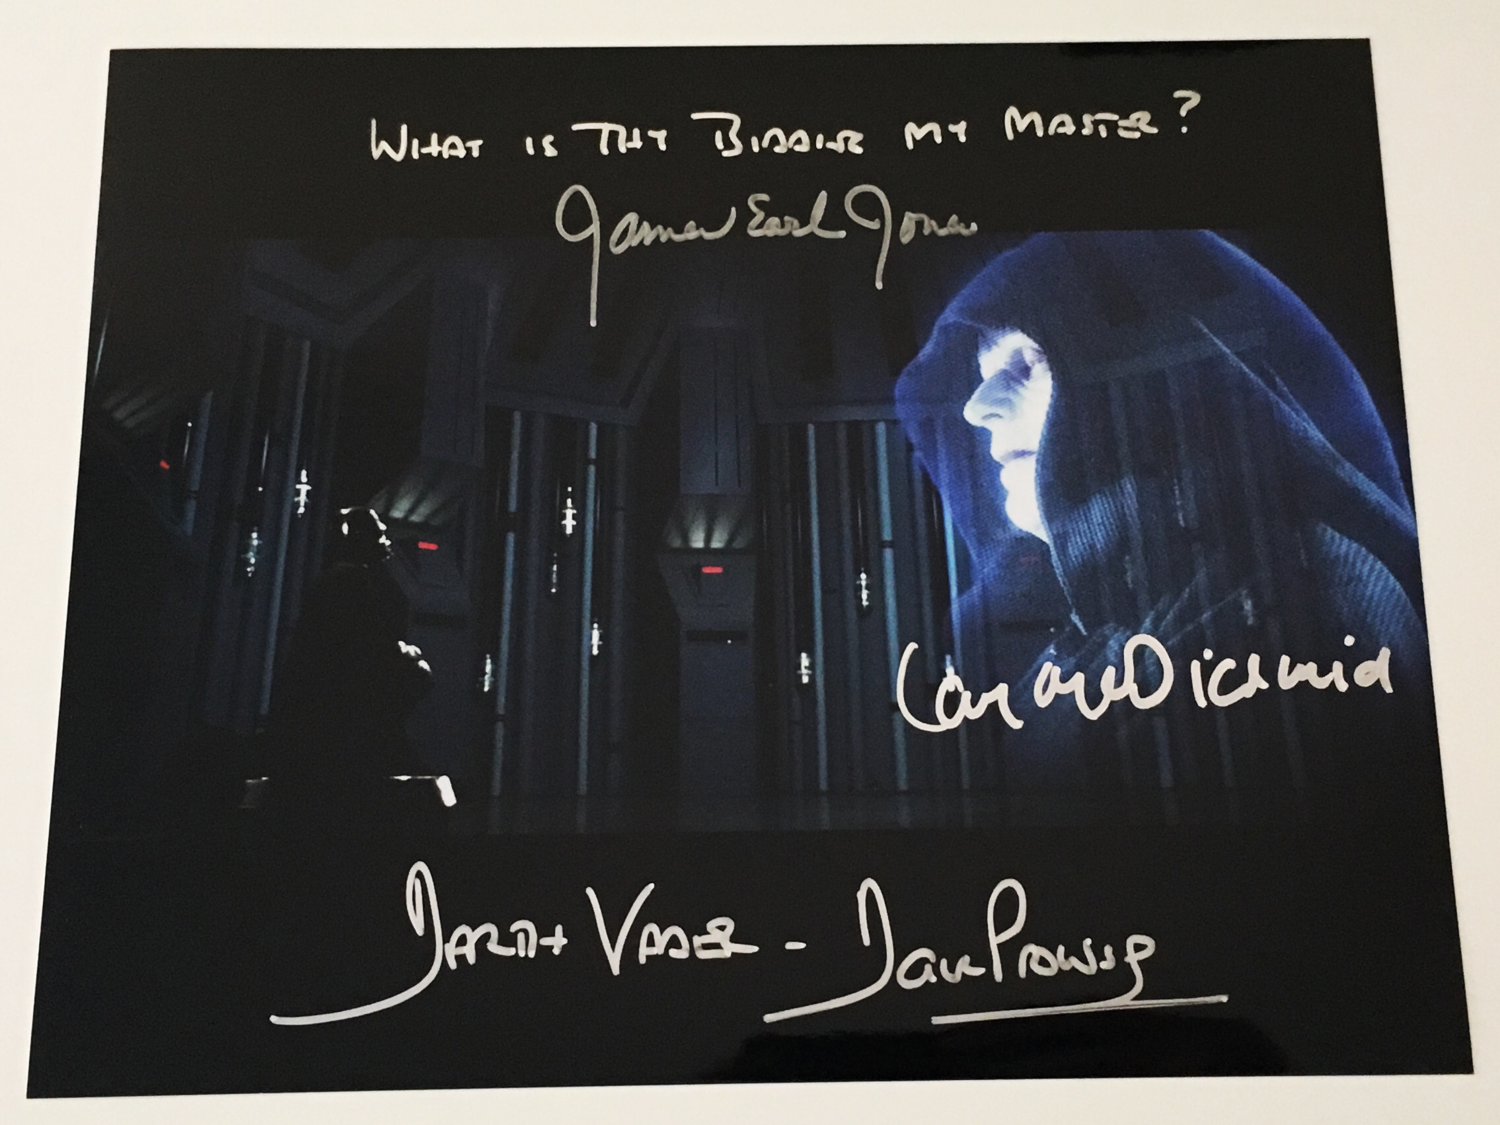 8X10 PHOTO SIGNED BY DAVE PROWSE, JAMES EARL JONES, AND IAN MCDIARMID